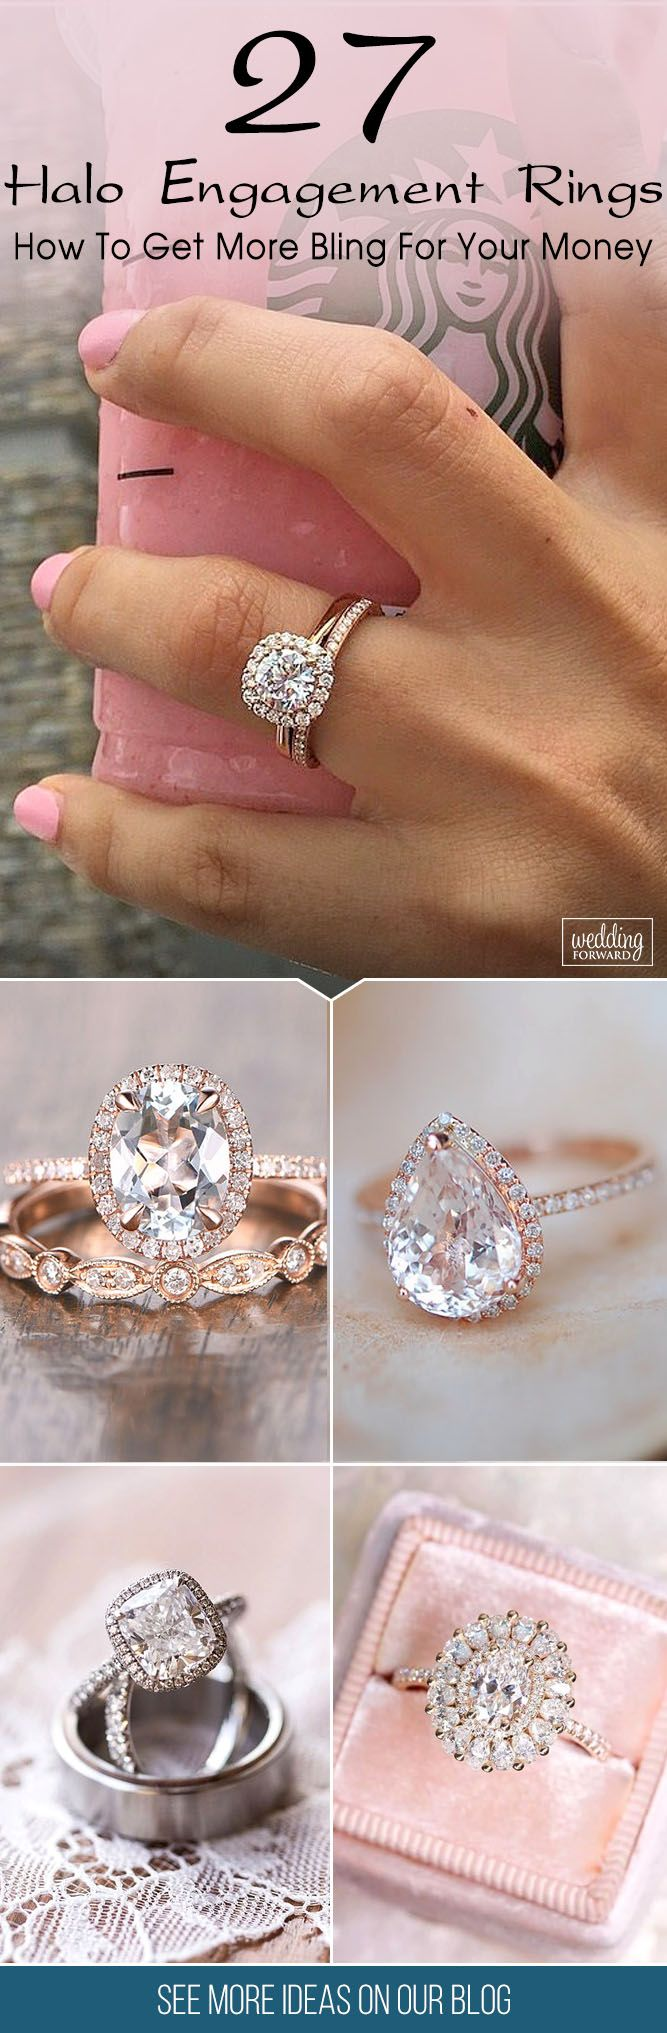 engagements band rings shank my french ct wedding vintage basket anniversary construction detail pave u plus thin images best avc partial halo set cushion pinterest on ring the daisy split ideas august